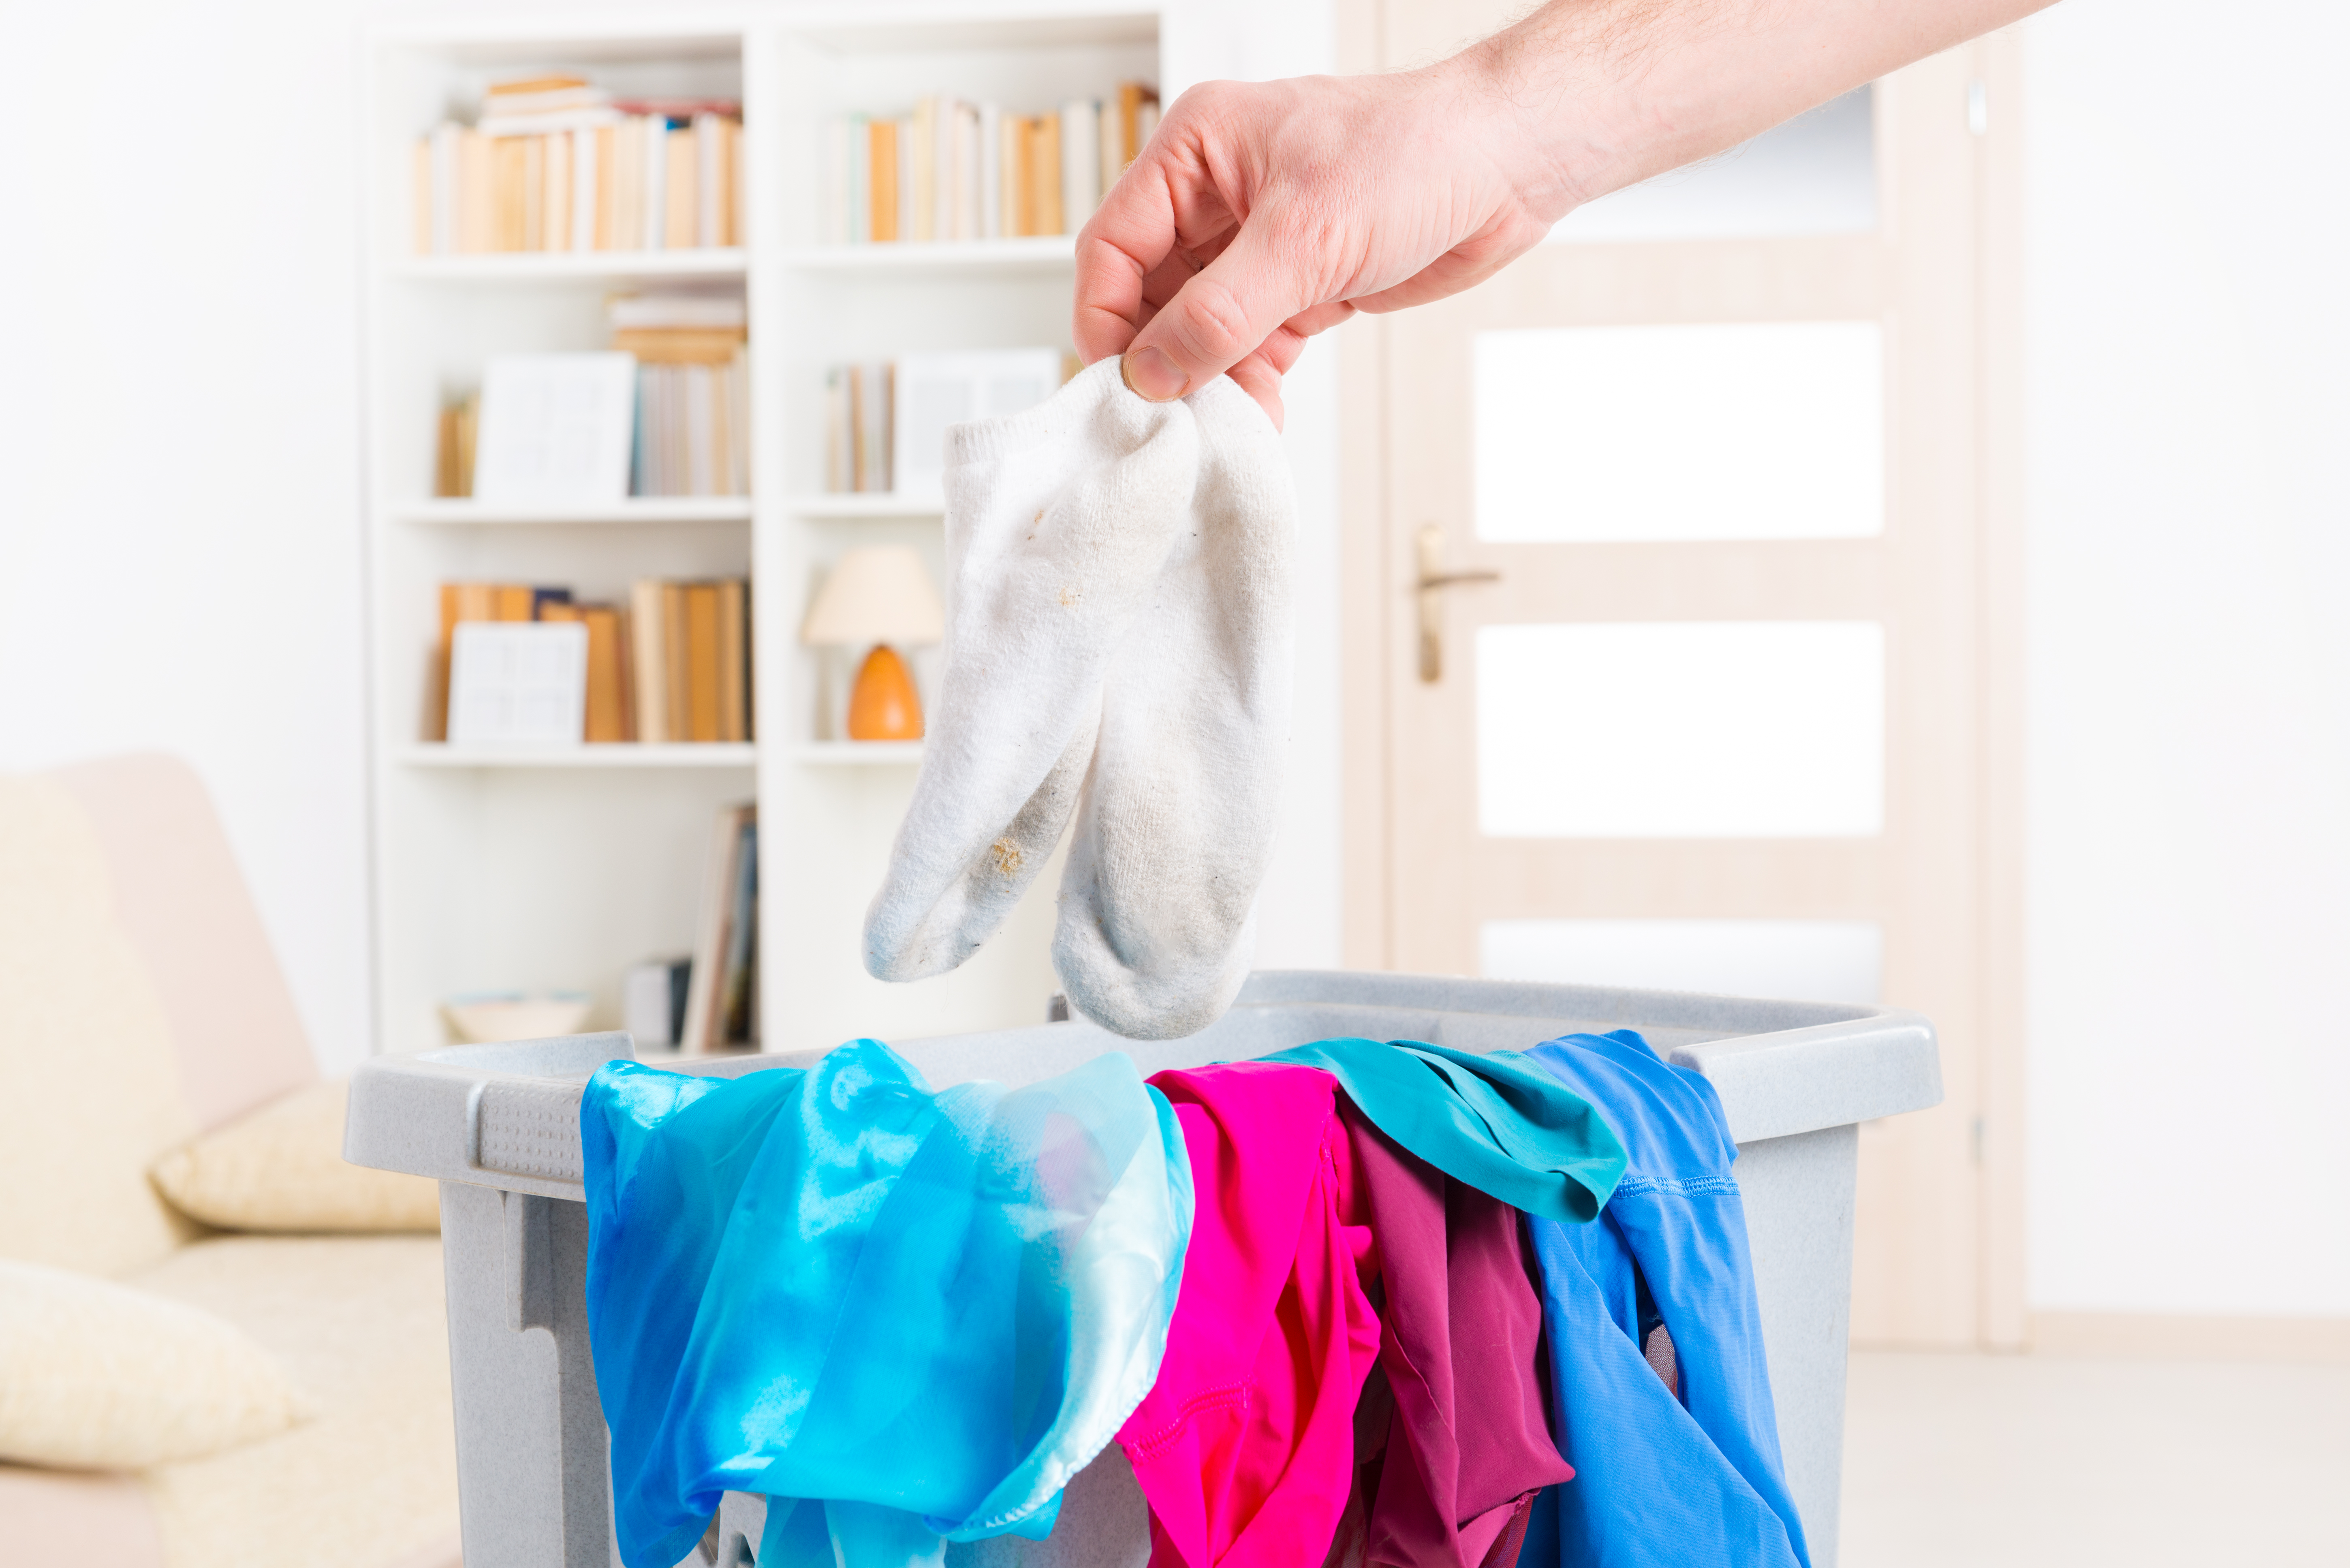 This Is Why Your Workout Clothes Still Stink After Being Washed